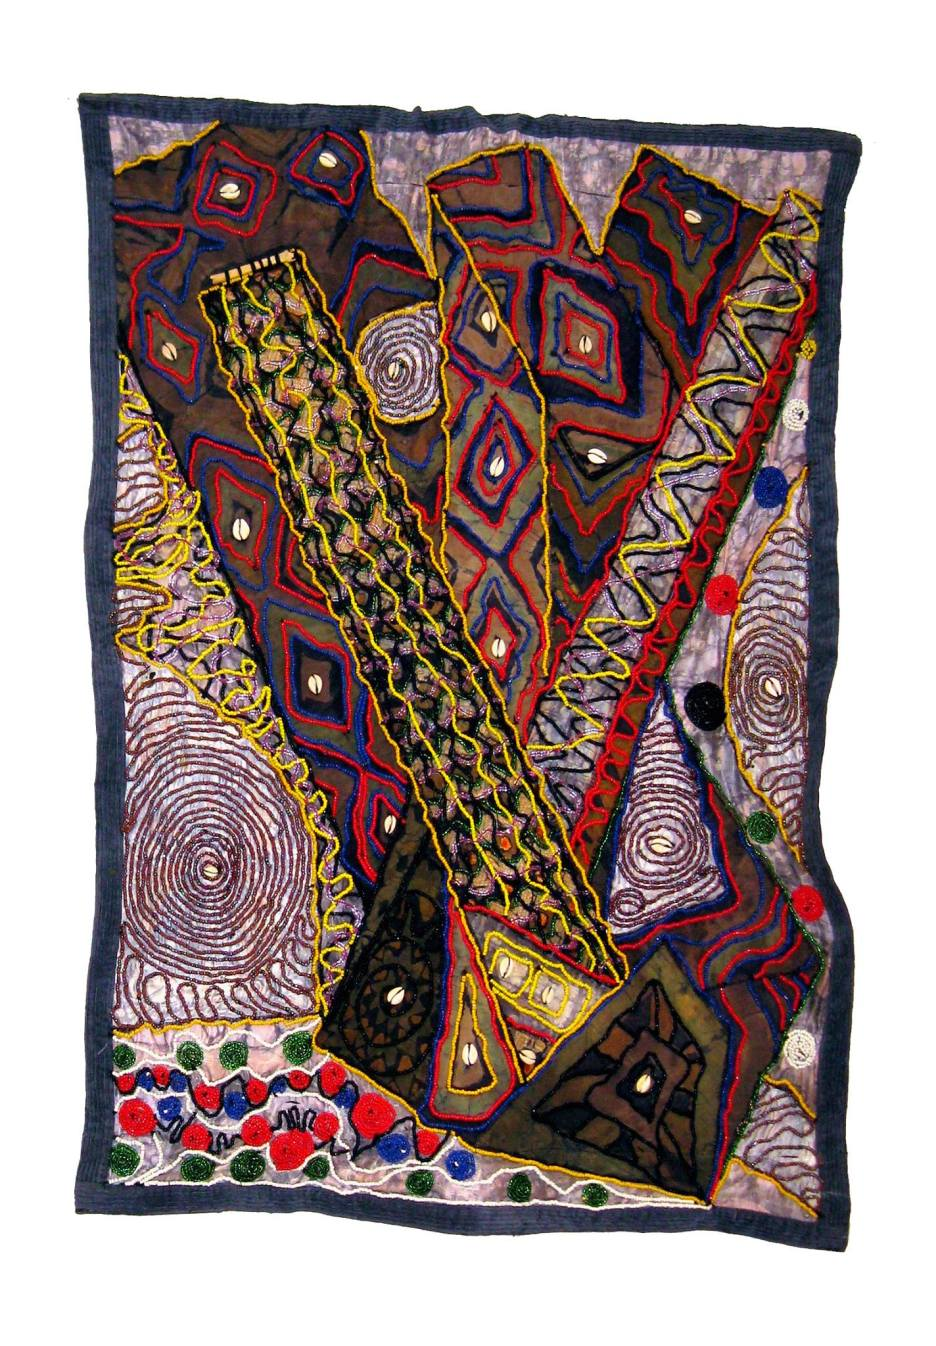 Bone of Contention? Beaded Batik Quilt Tapestry - Tunde Odunlade, Nigeria 2017